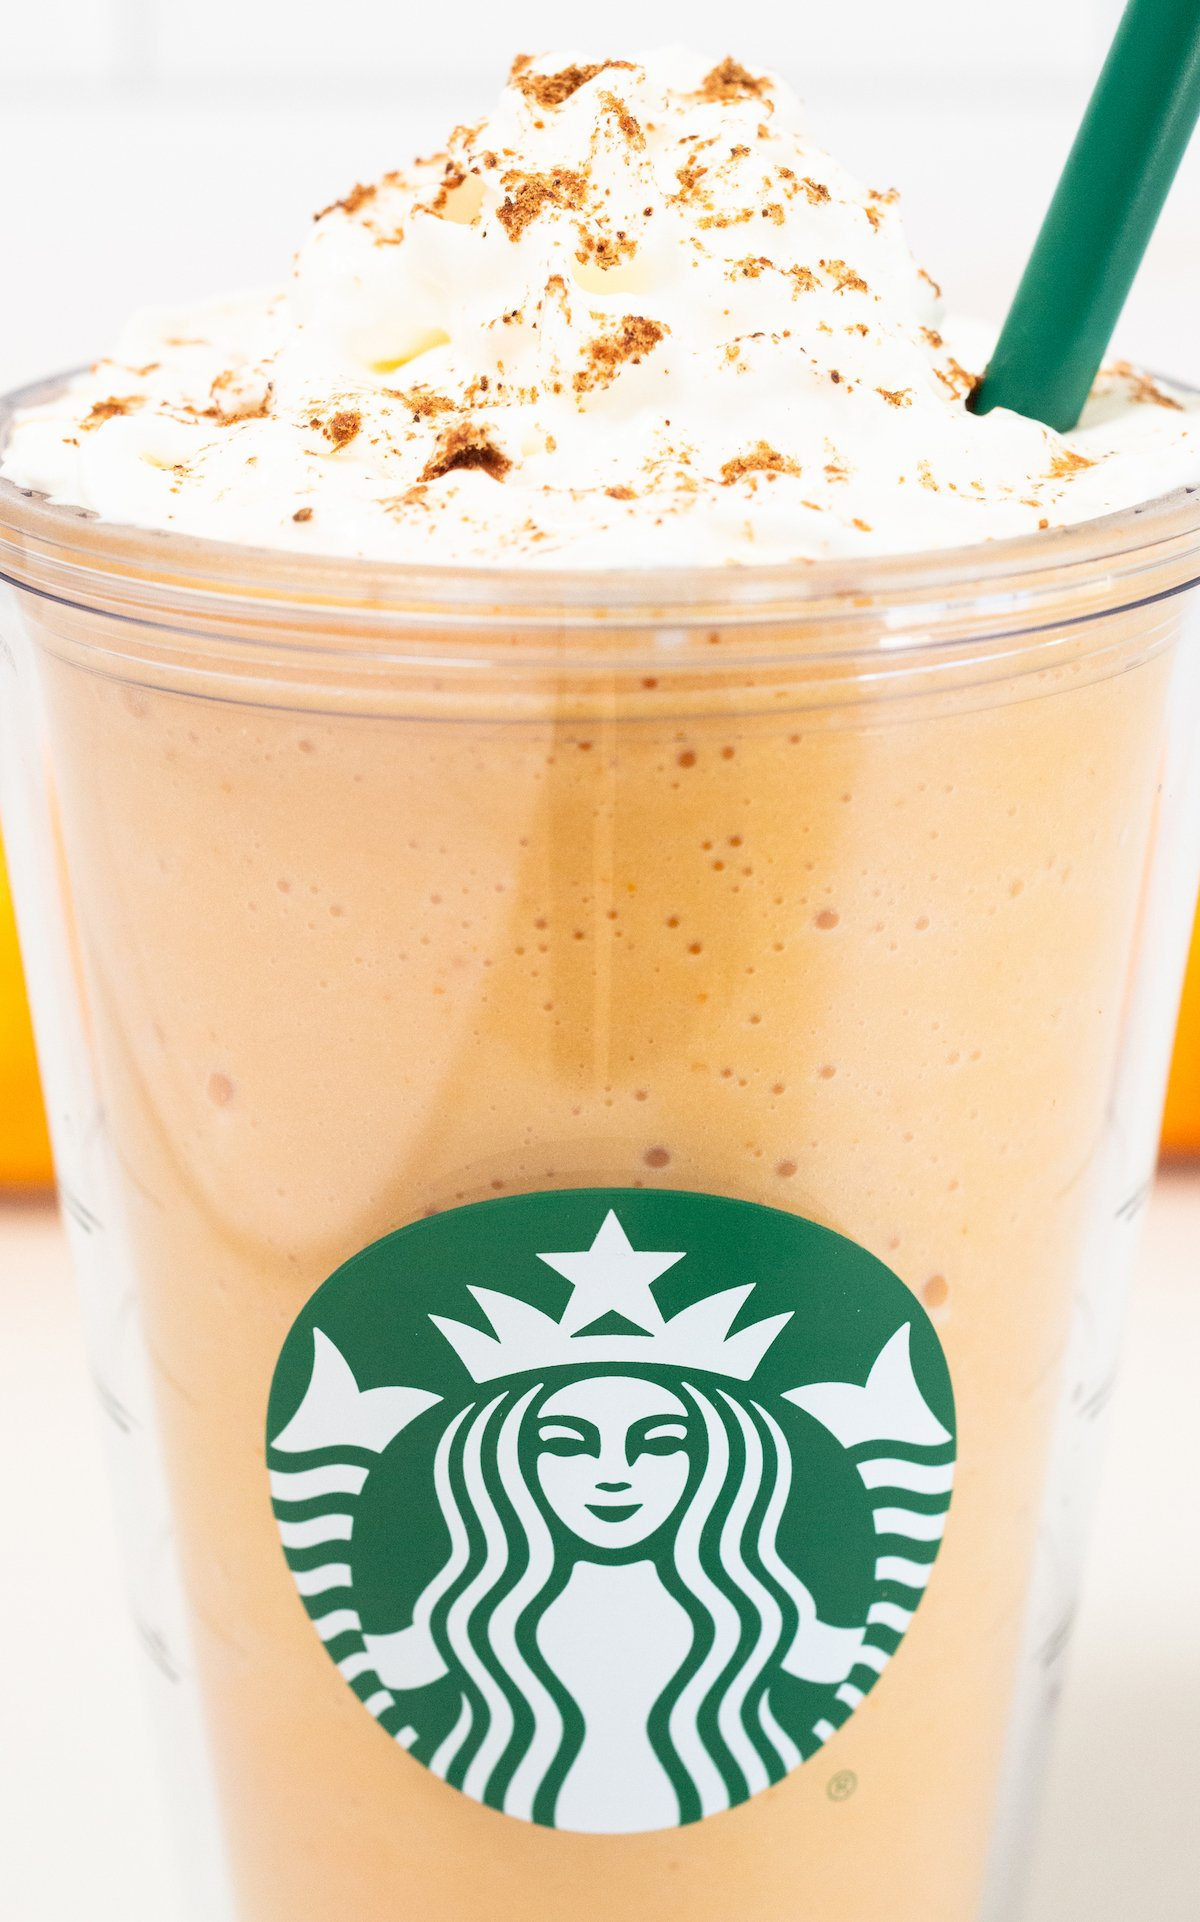 Close up of a starbucks plastic tumbler with a pumpkin spice frappucino and whipped cream on top.